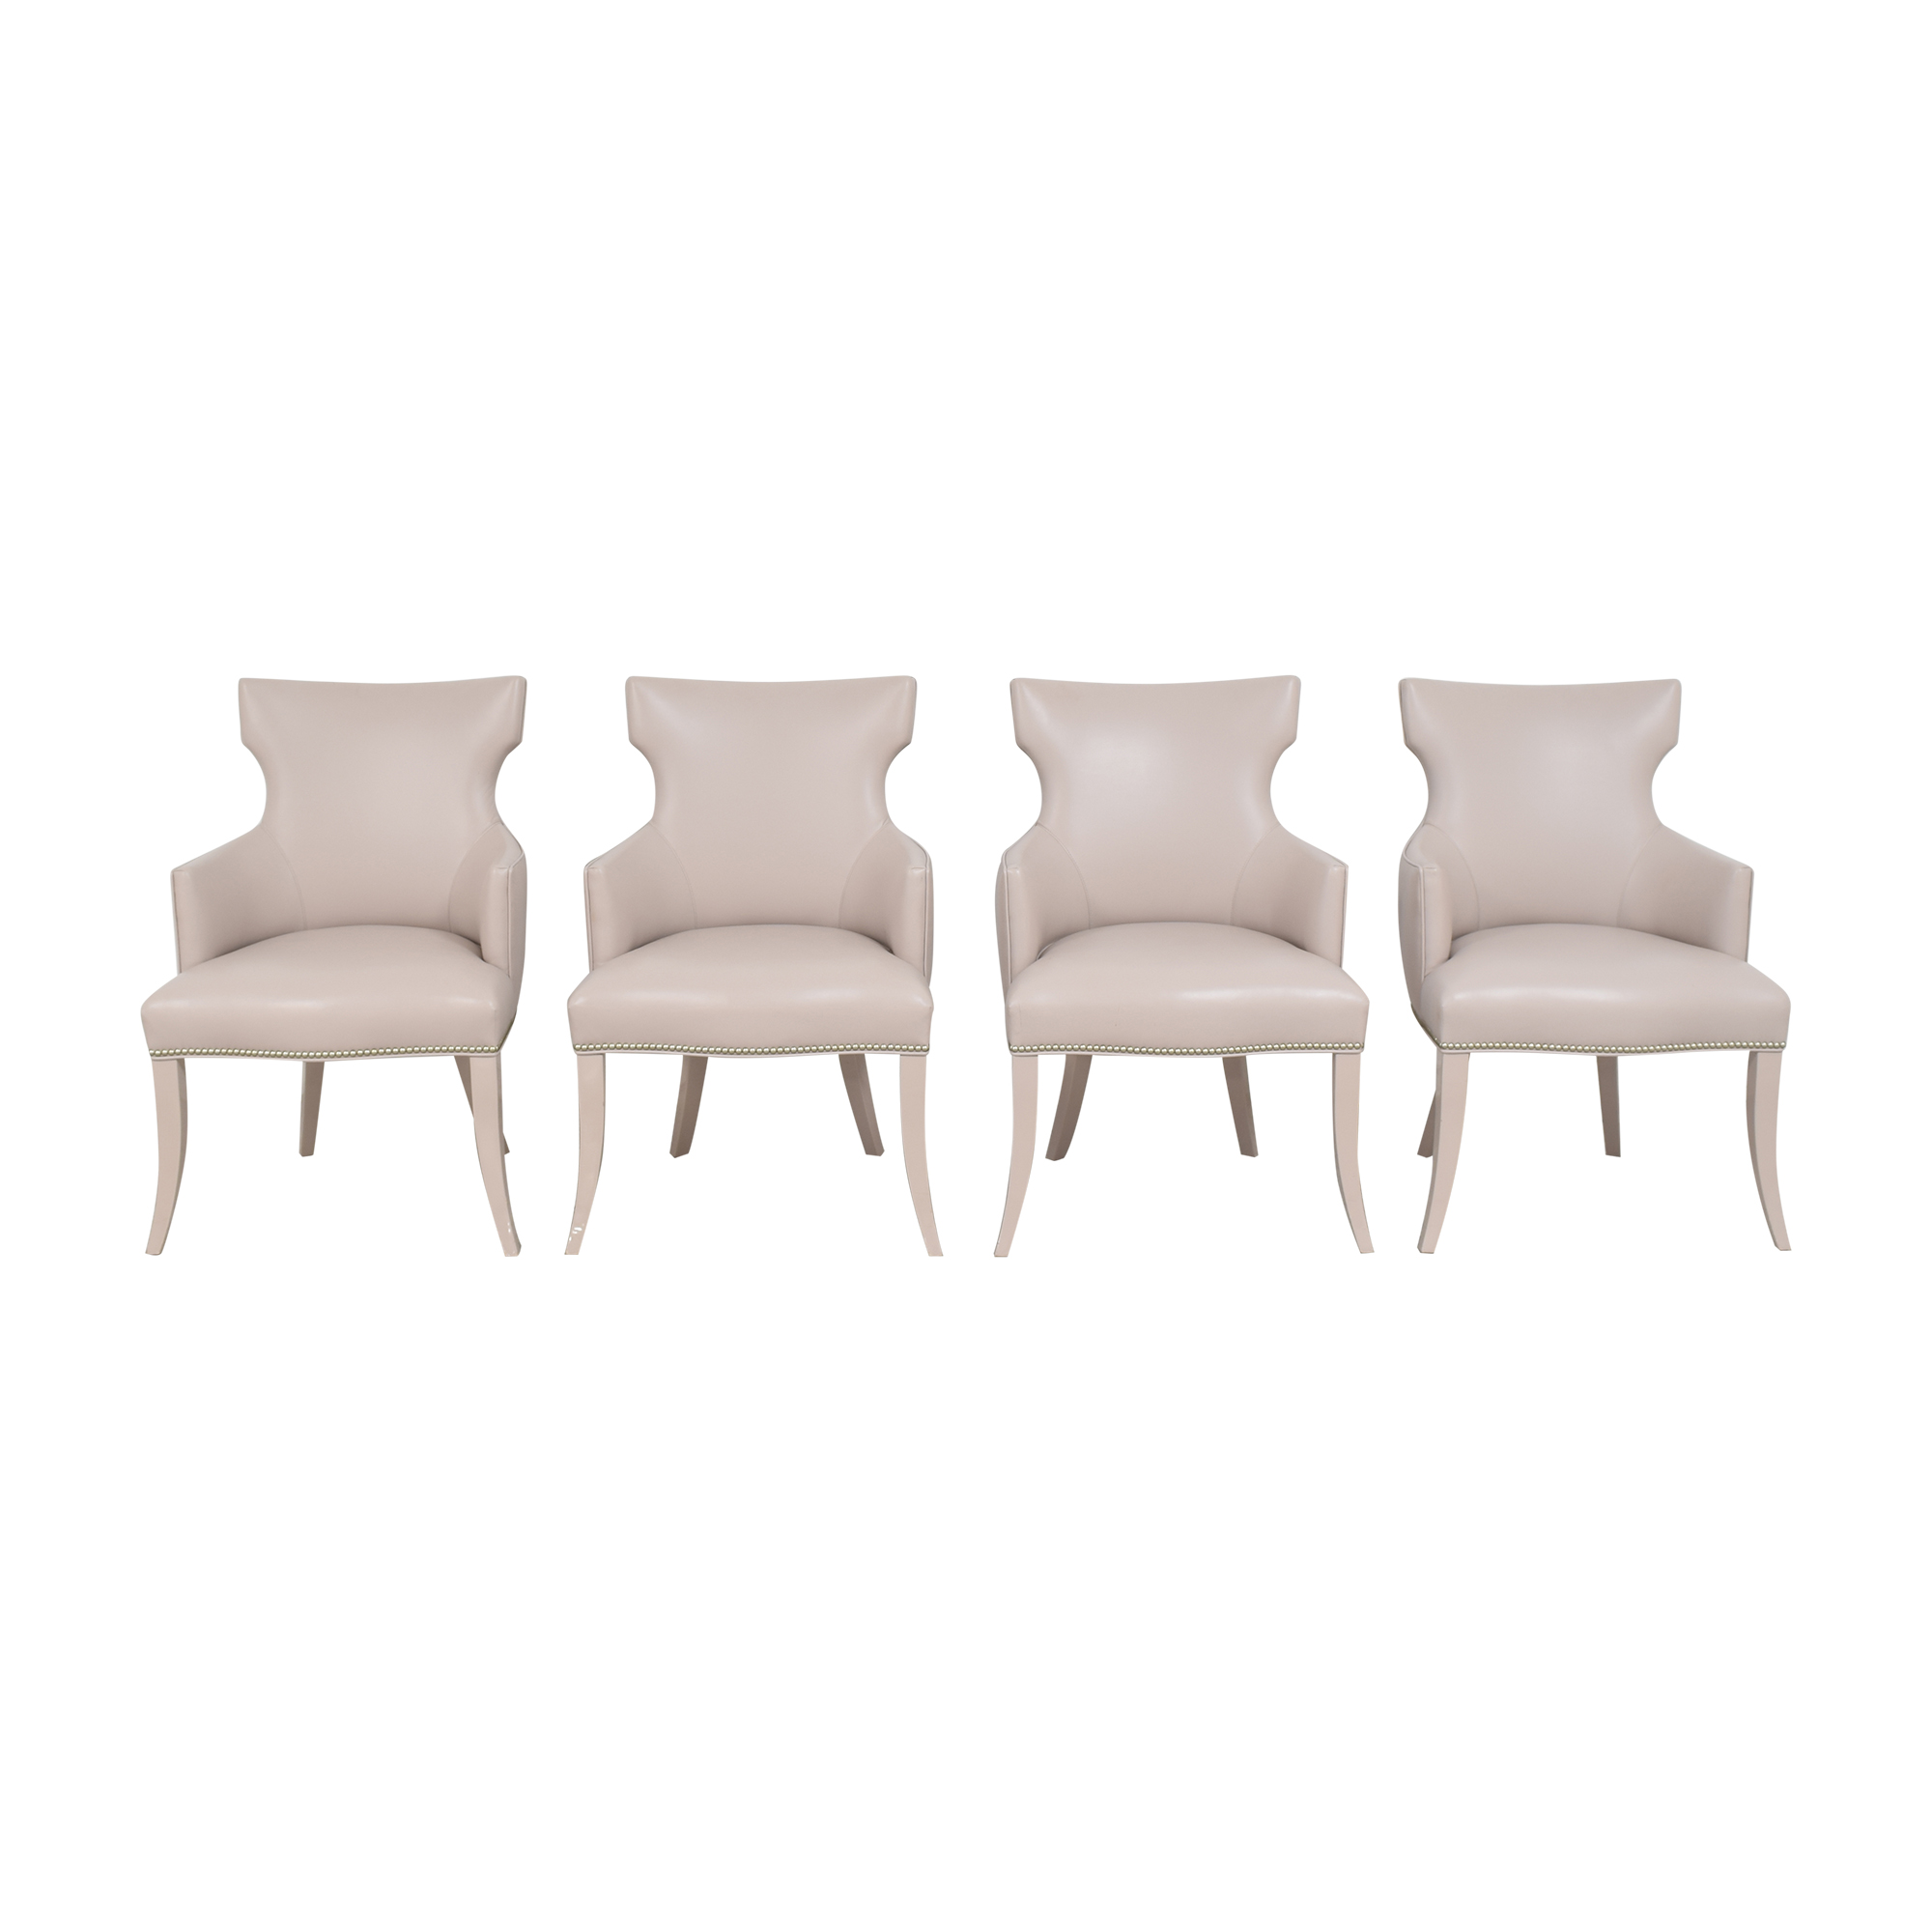 Artistic Frame Artistic Frame Custom Wing Back Dining Chairs second hand